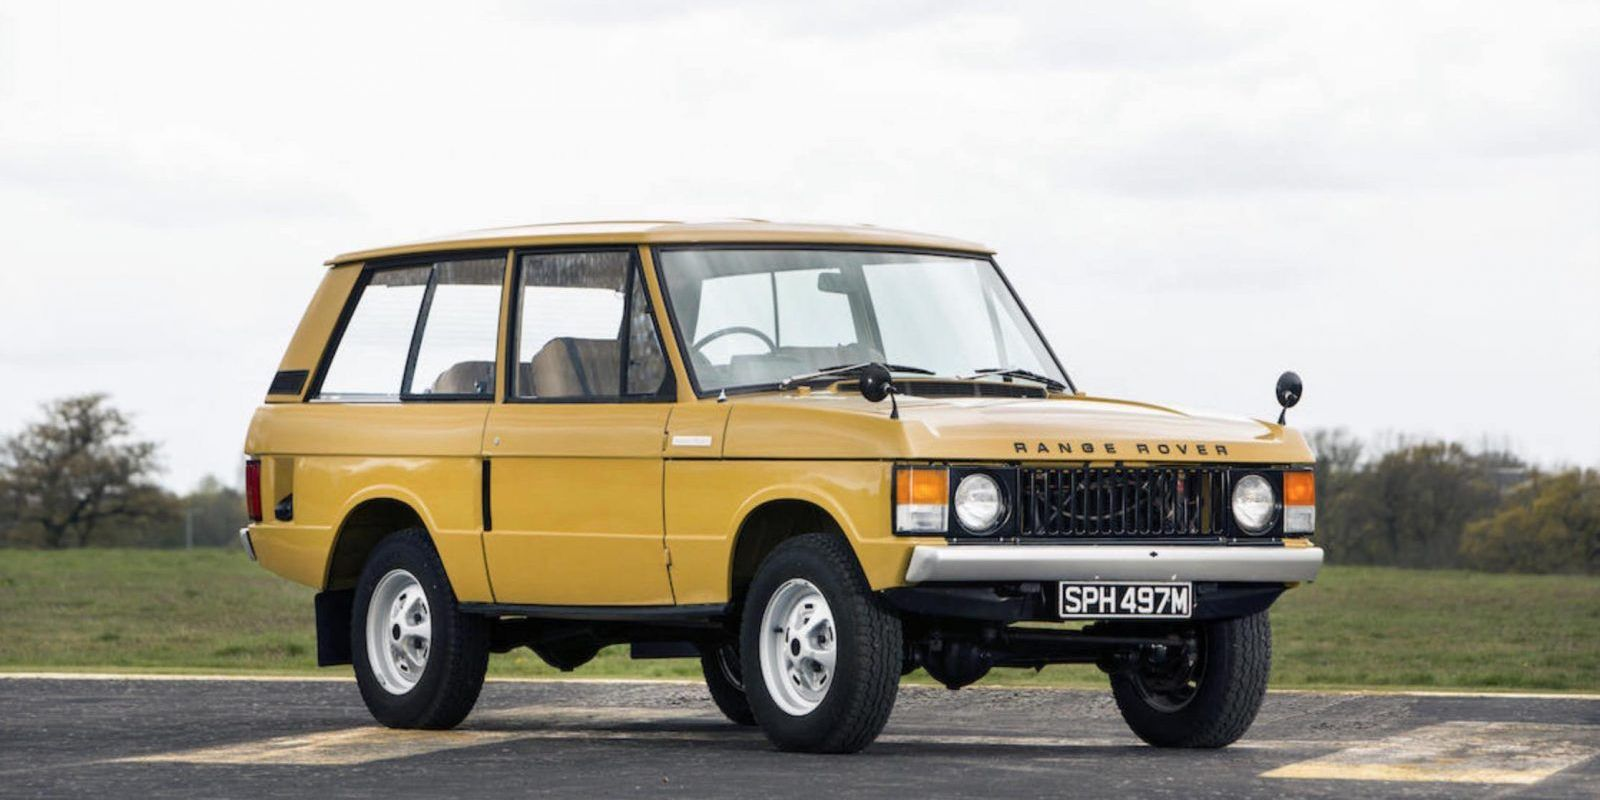 These Classic Cars Are Incredibly Slow... But We Still Can't Afford Them